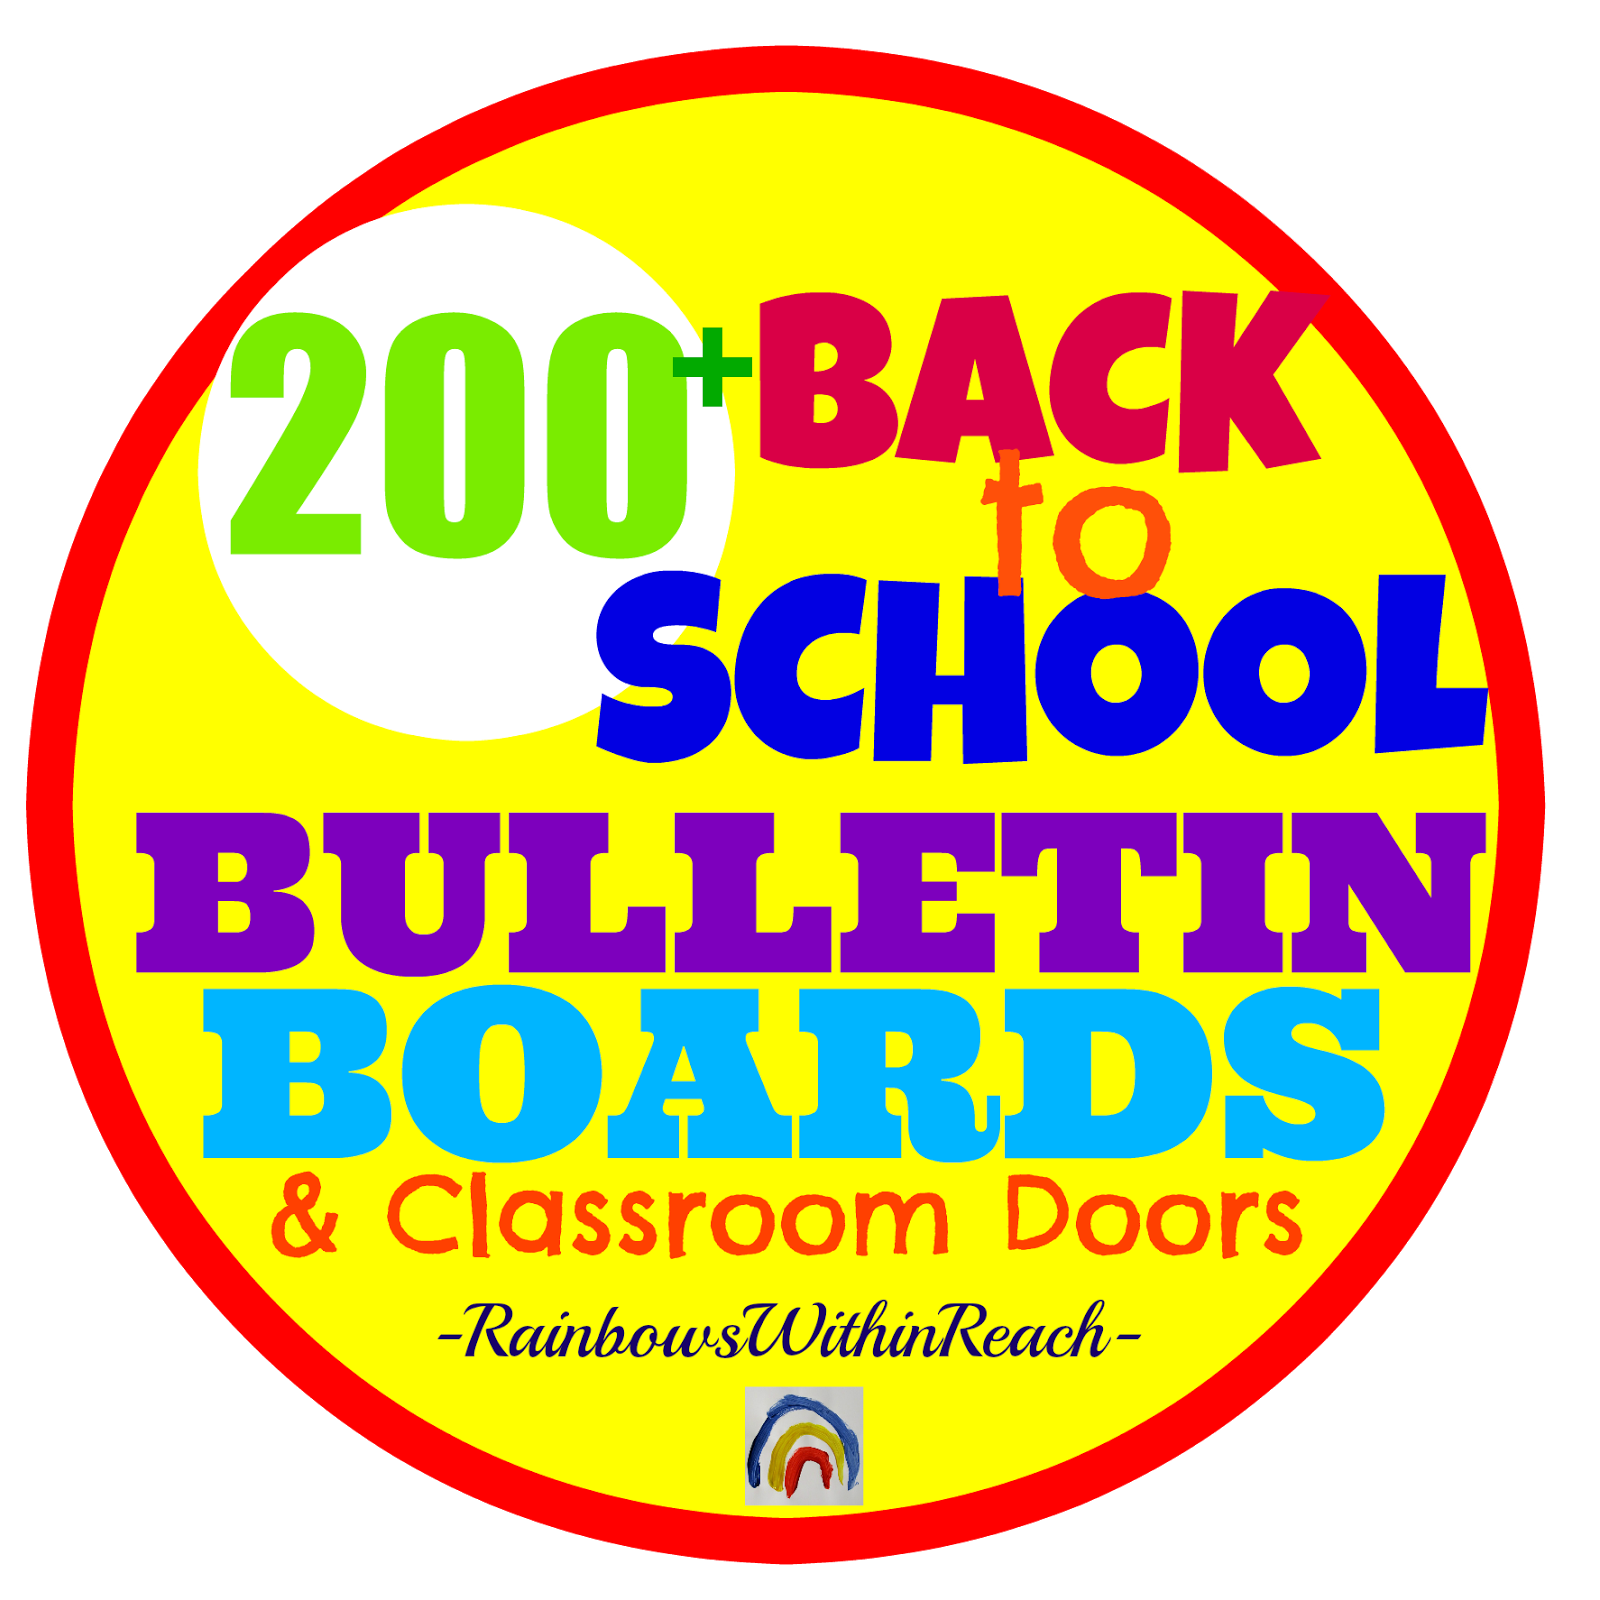 200+ Back to School Bulletin Boards + Classroom Doors at RainbowsWithinReach